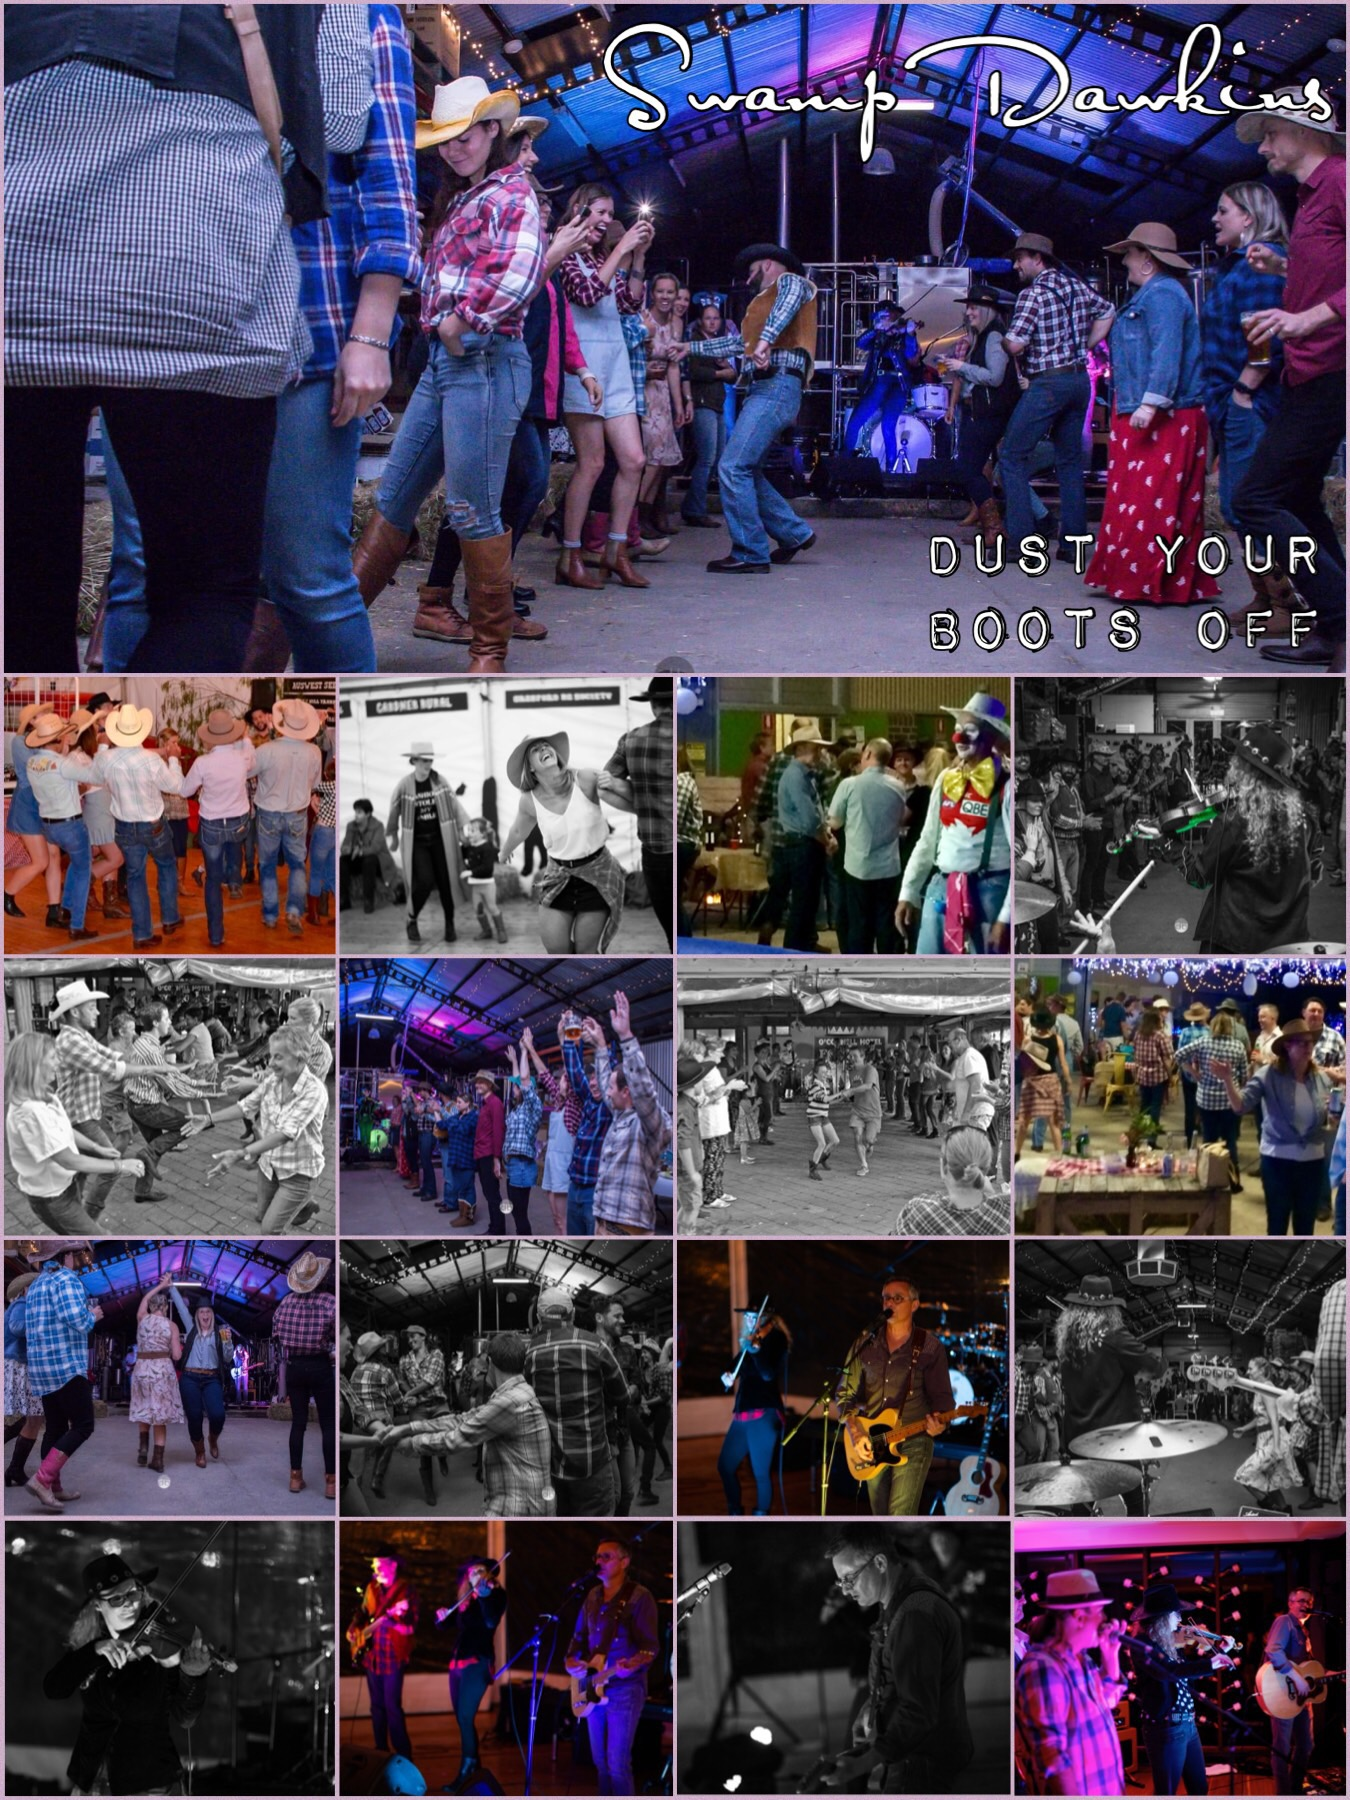 country dance, bushdance, hoedown, barn dance, honkytonk | Swamp Dawkins |  Live Music Dance Band